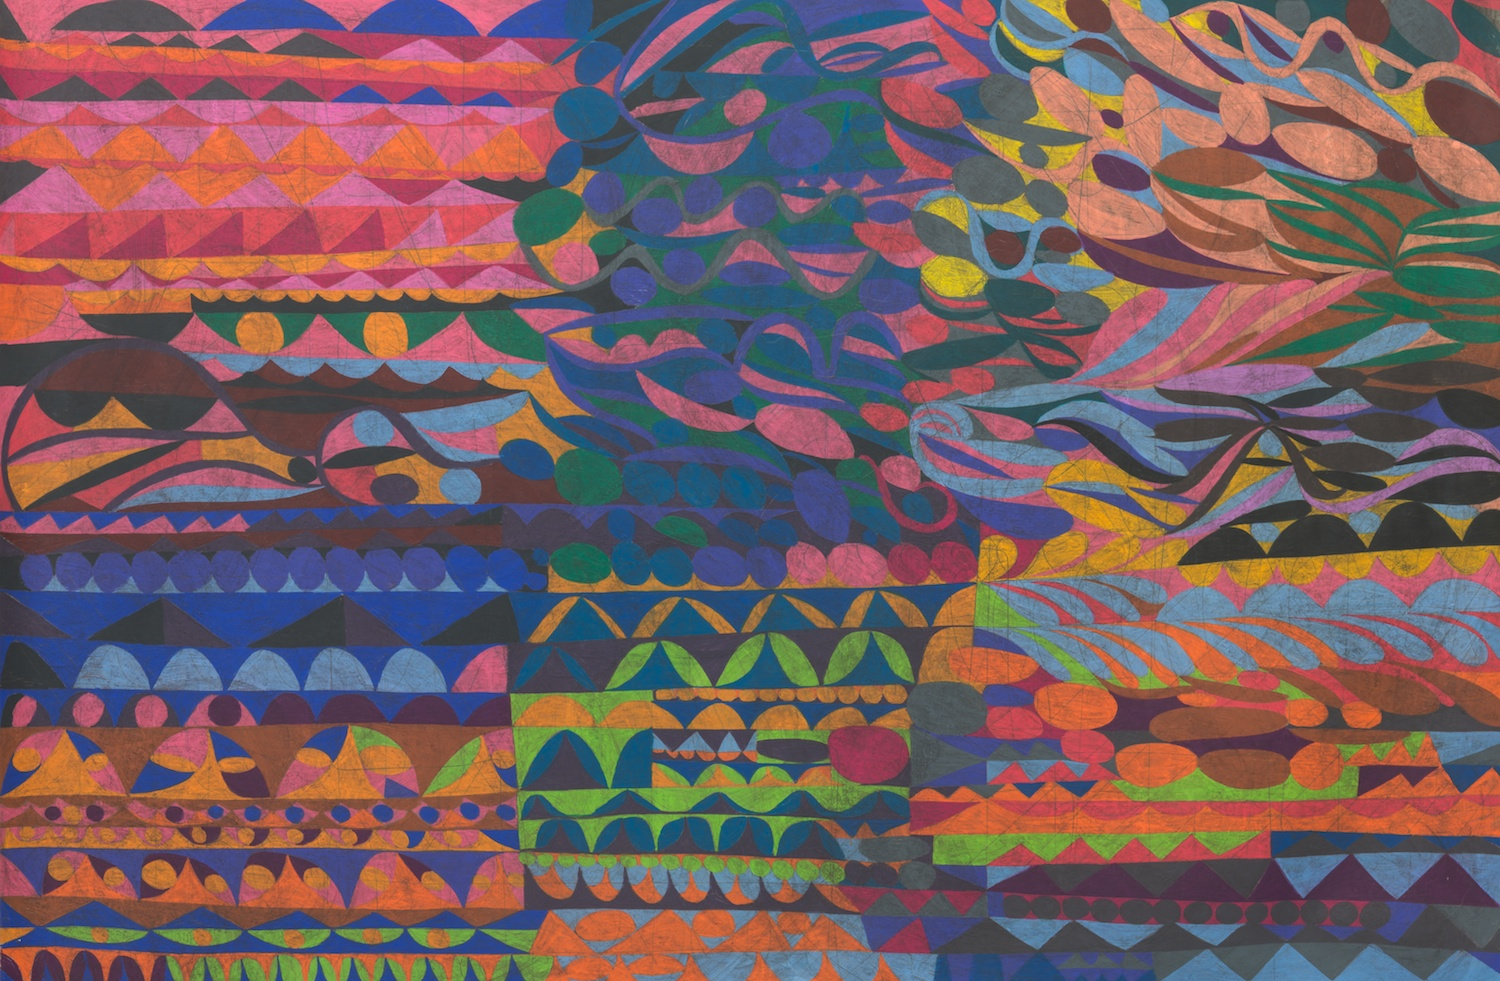 William J. O'Brien  Untitled  2013 Colored pencil and ink on paper 62h x 72w in WOB932